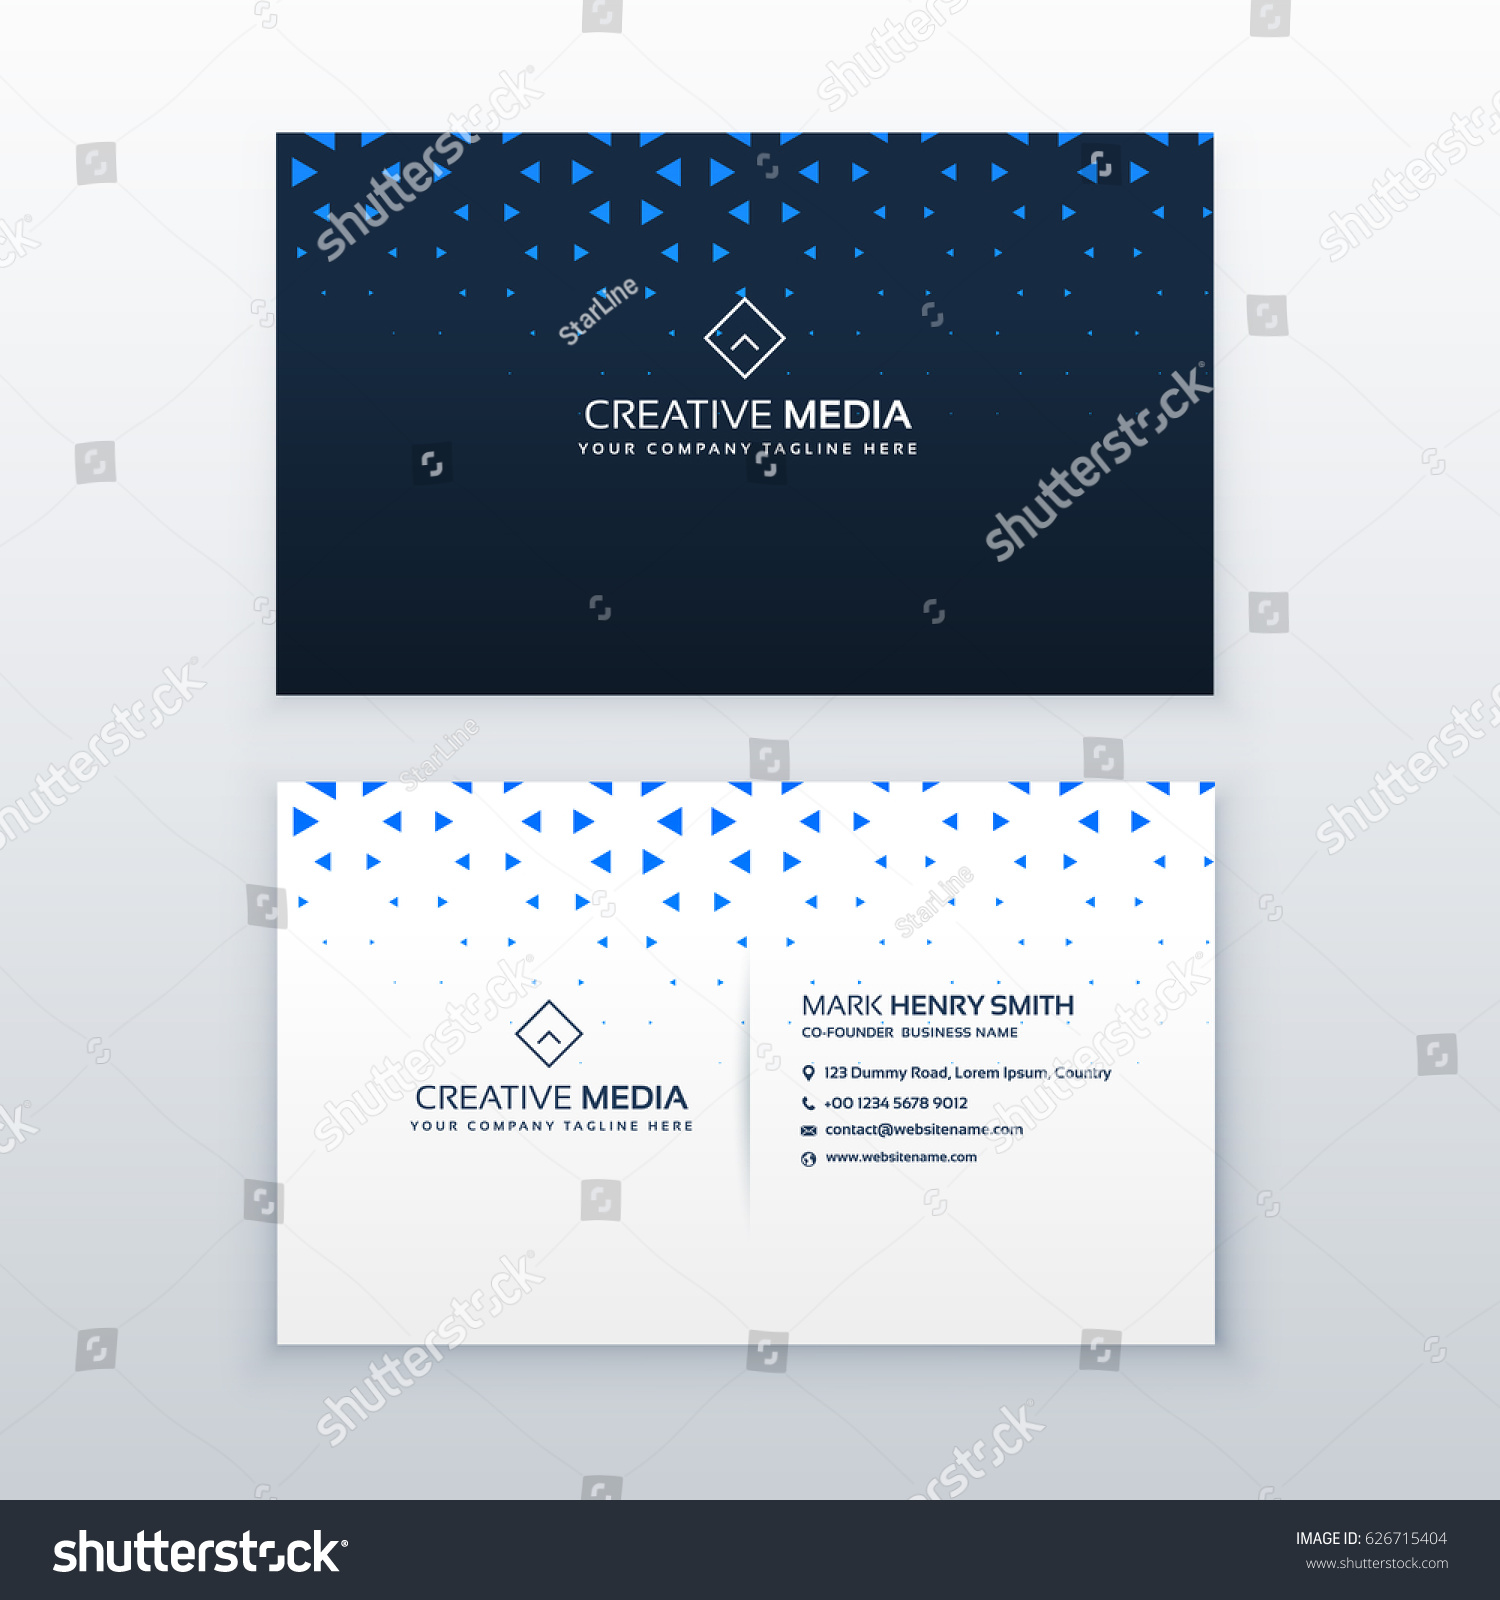 Simple Business Card Design Triangle Shapes Stock Vector 626715404 ...